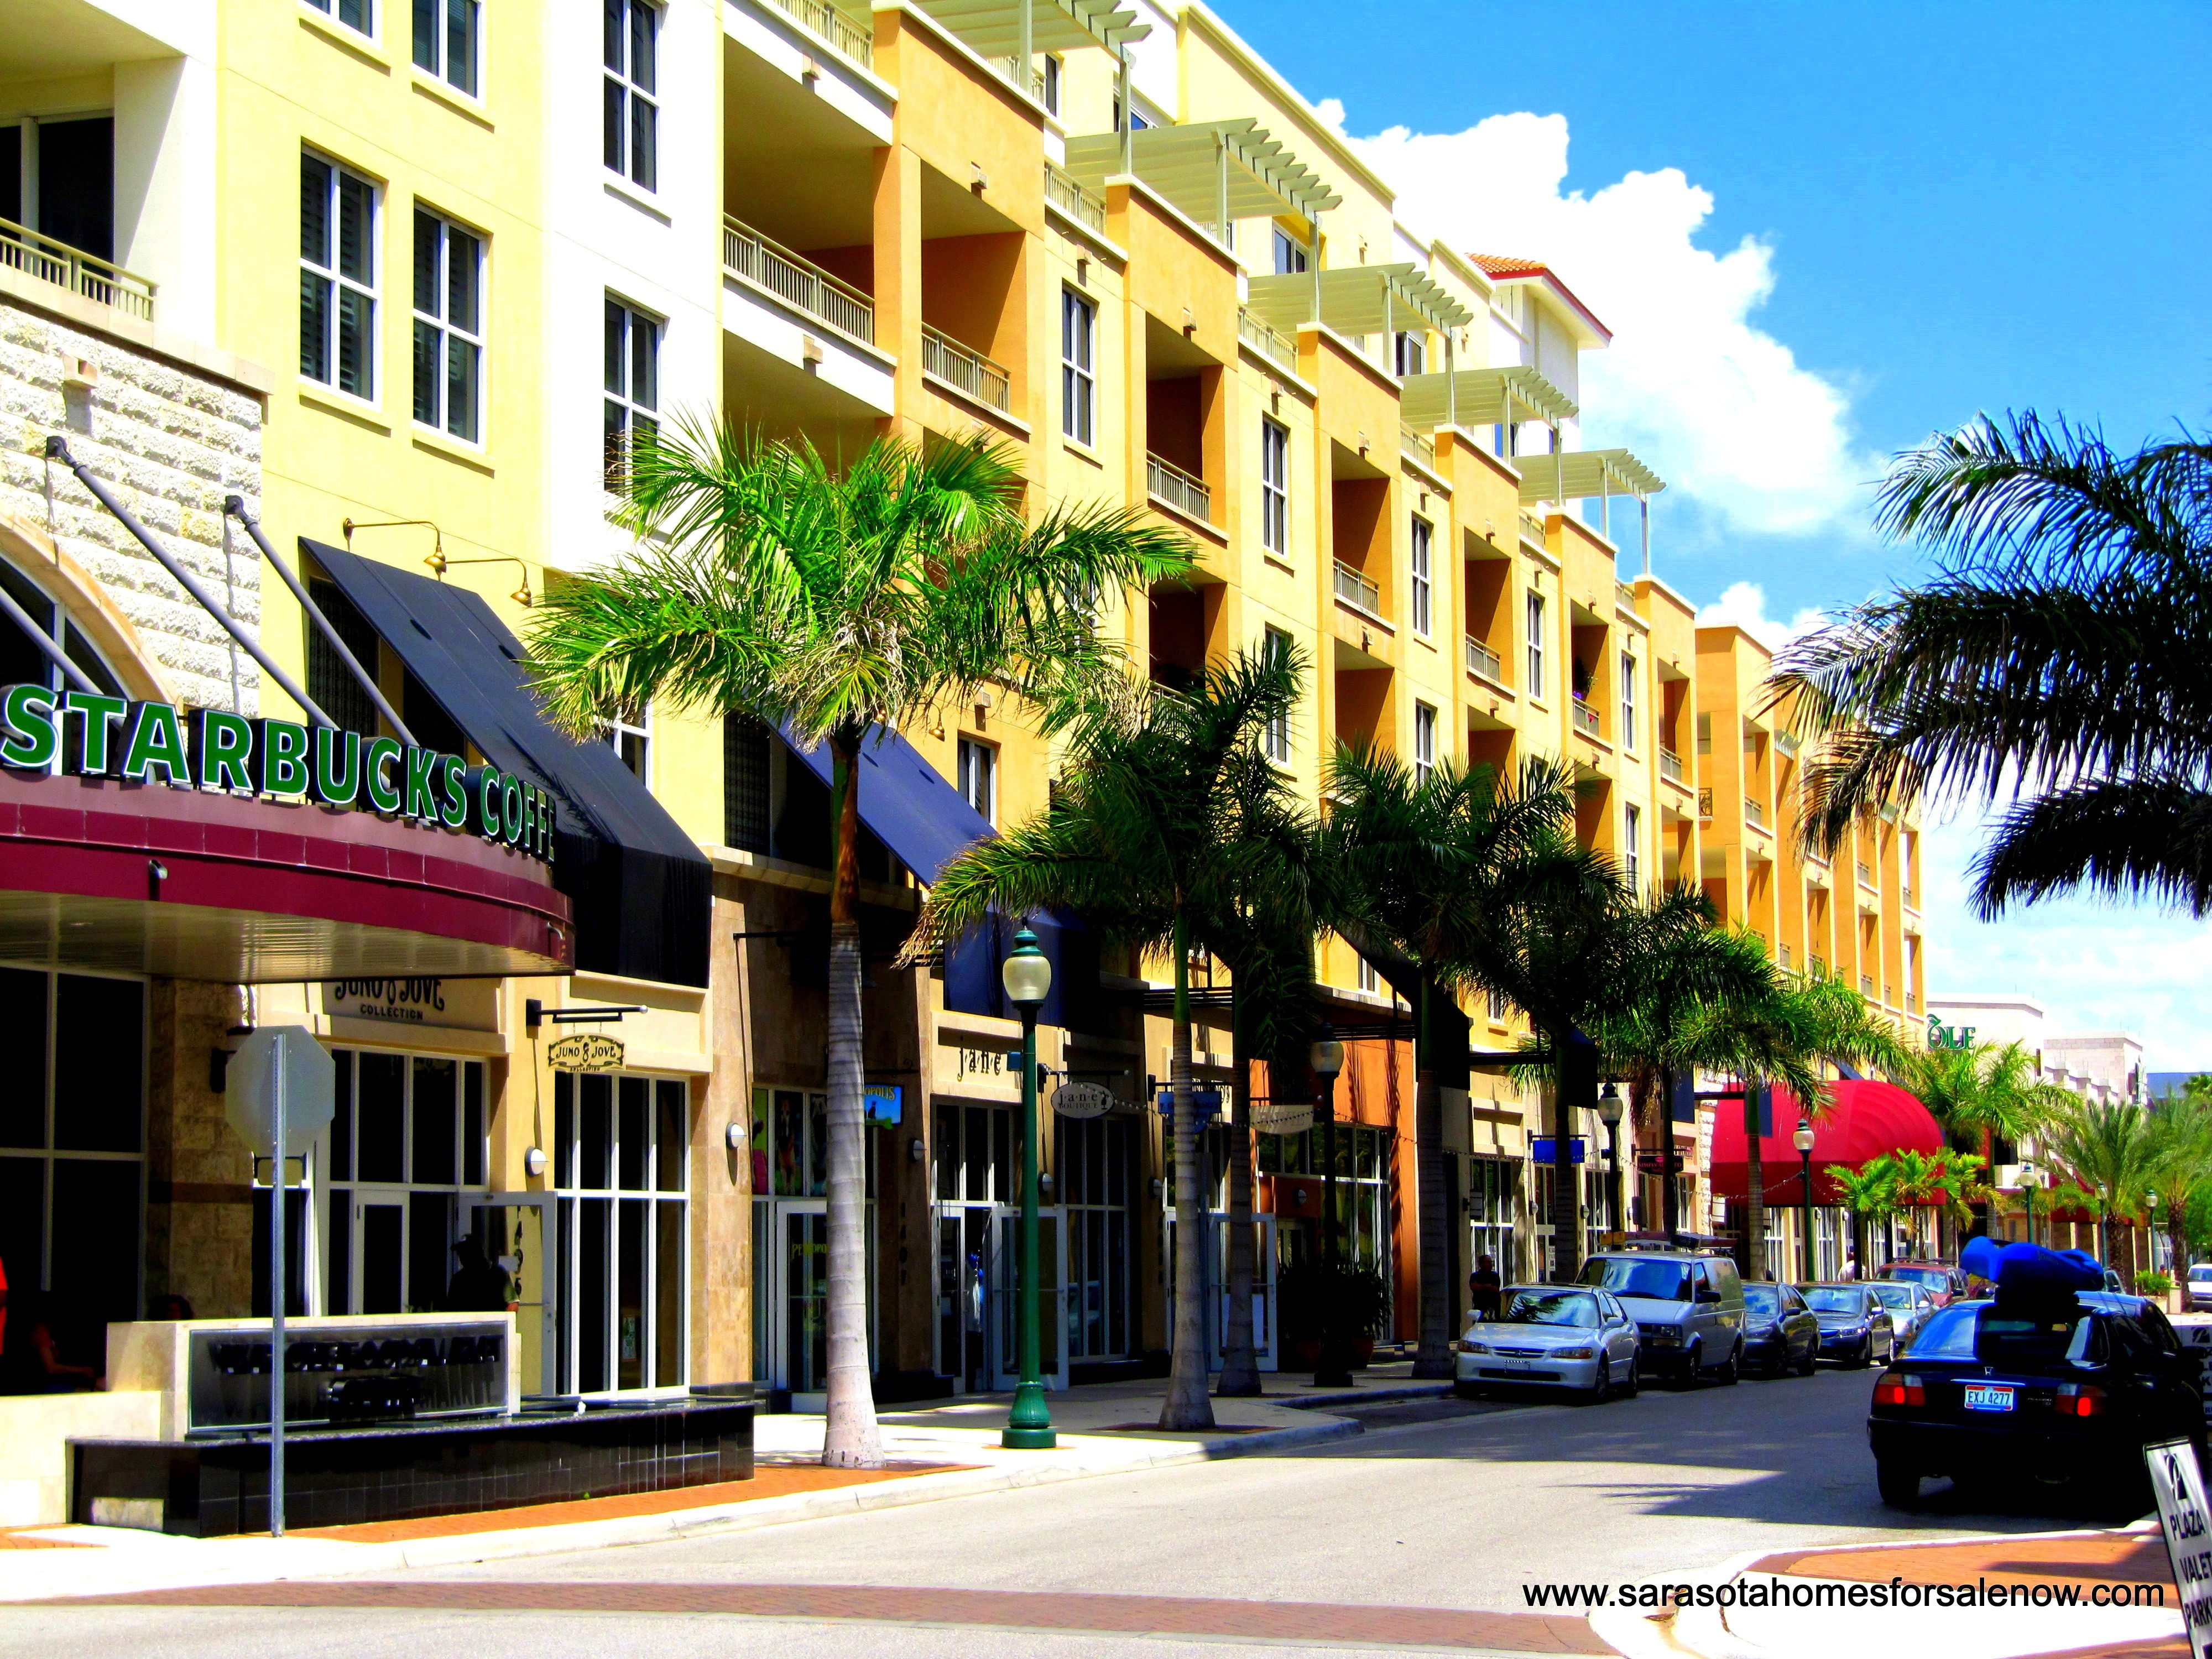 Safe New Vibrant Sarasota S Downtown Offers Easy Walking